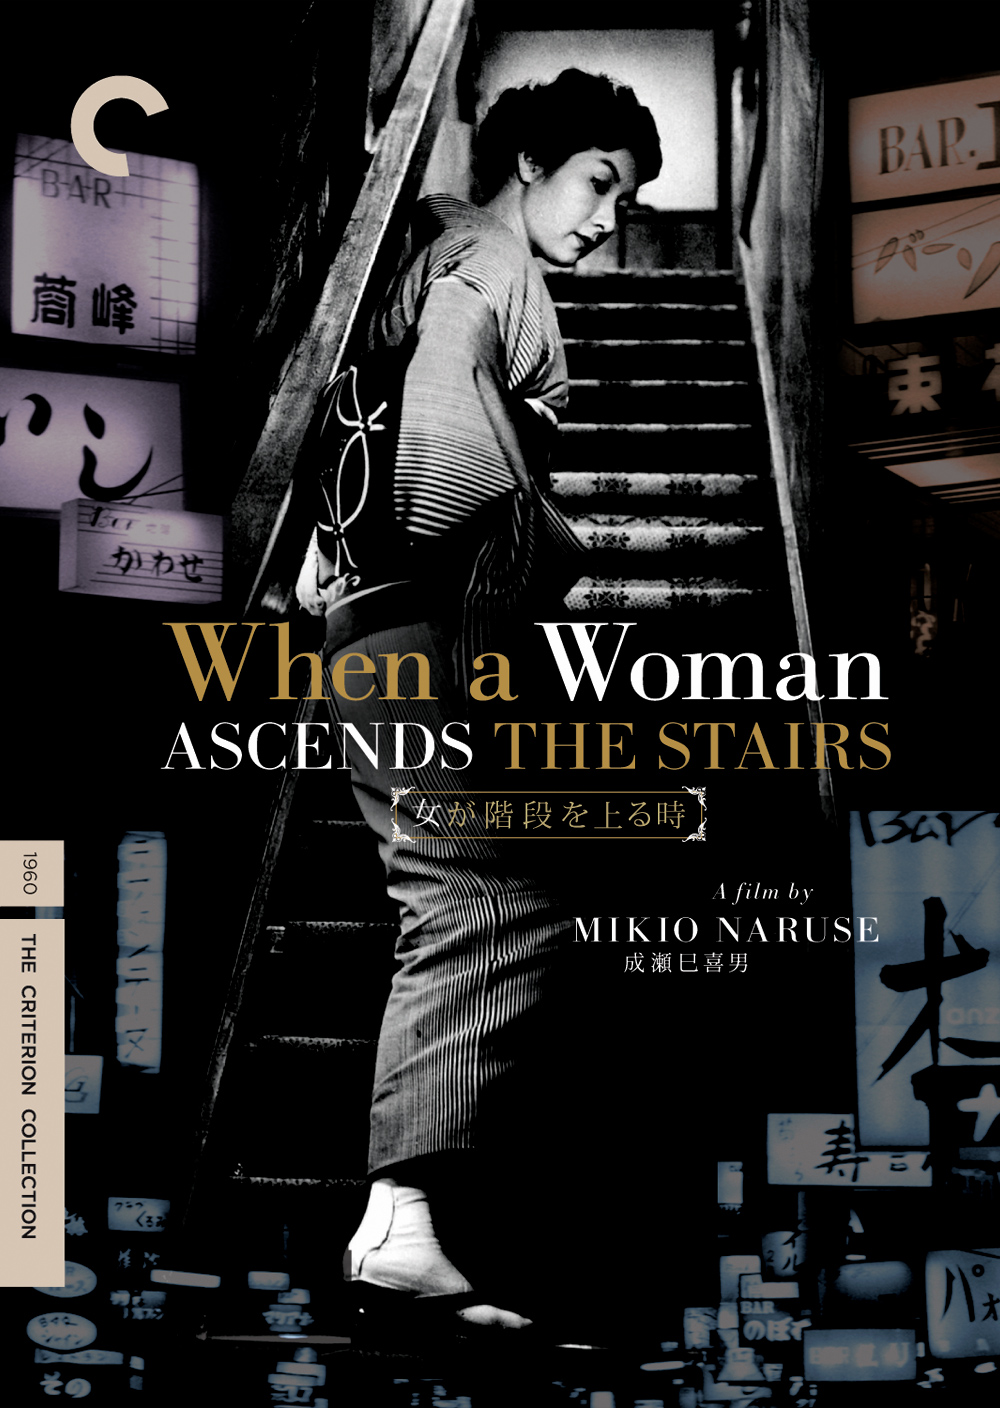 When-a-Woman-Ascends-the-Stairs-Criterion-DVD